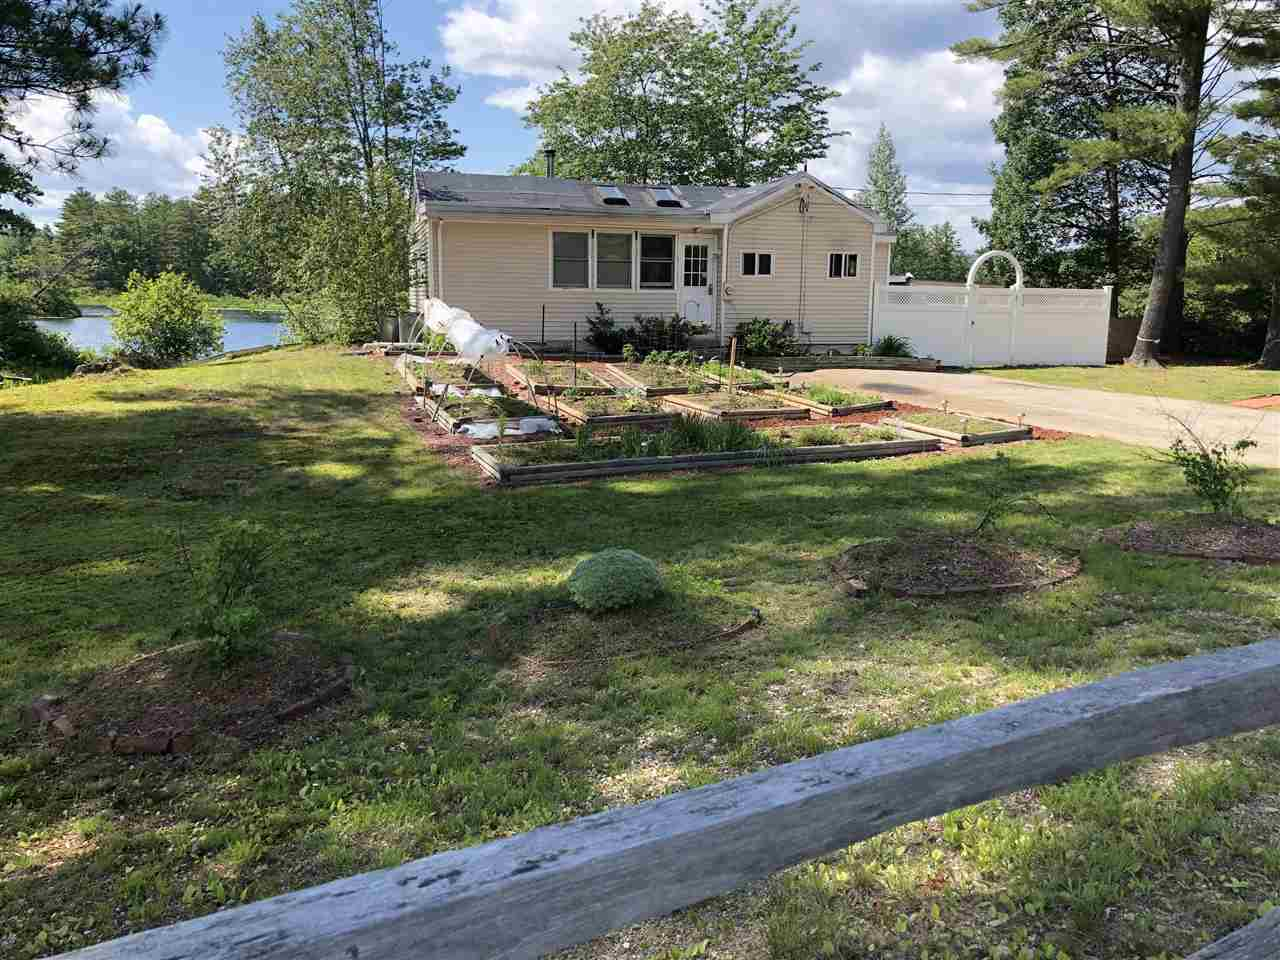 NEW DURHAM NH Home for sale $231,900